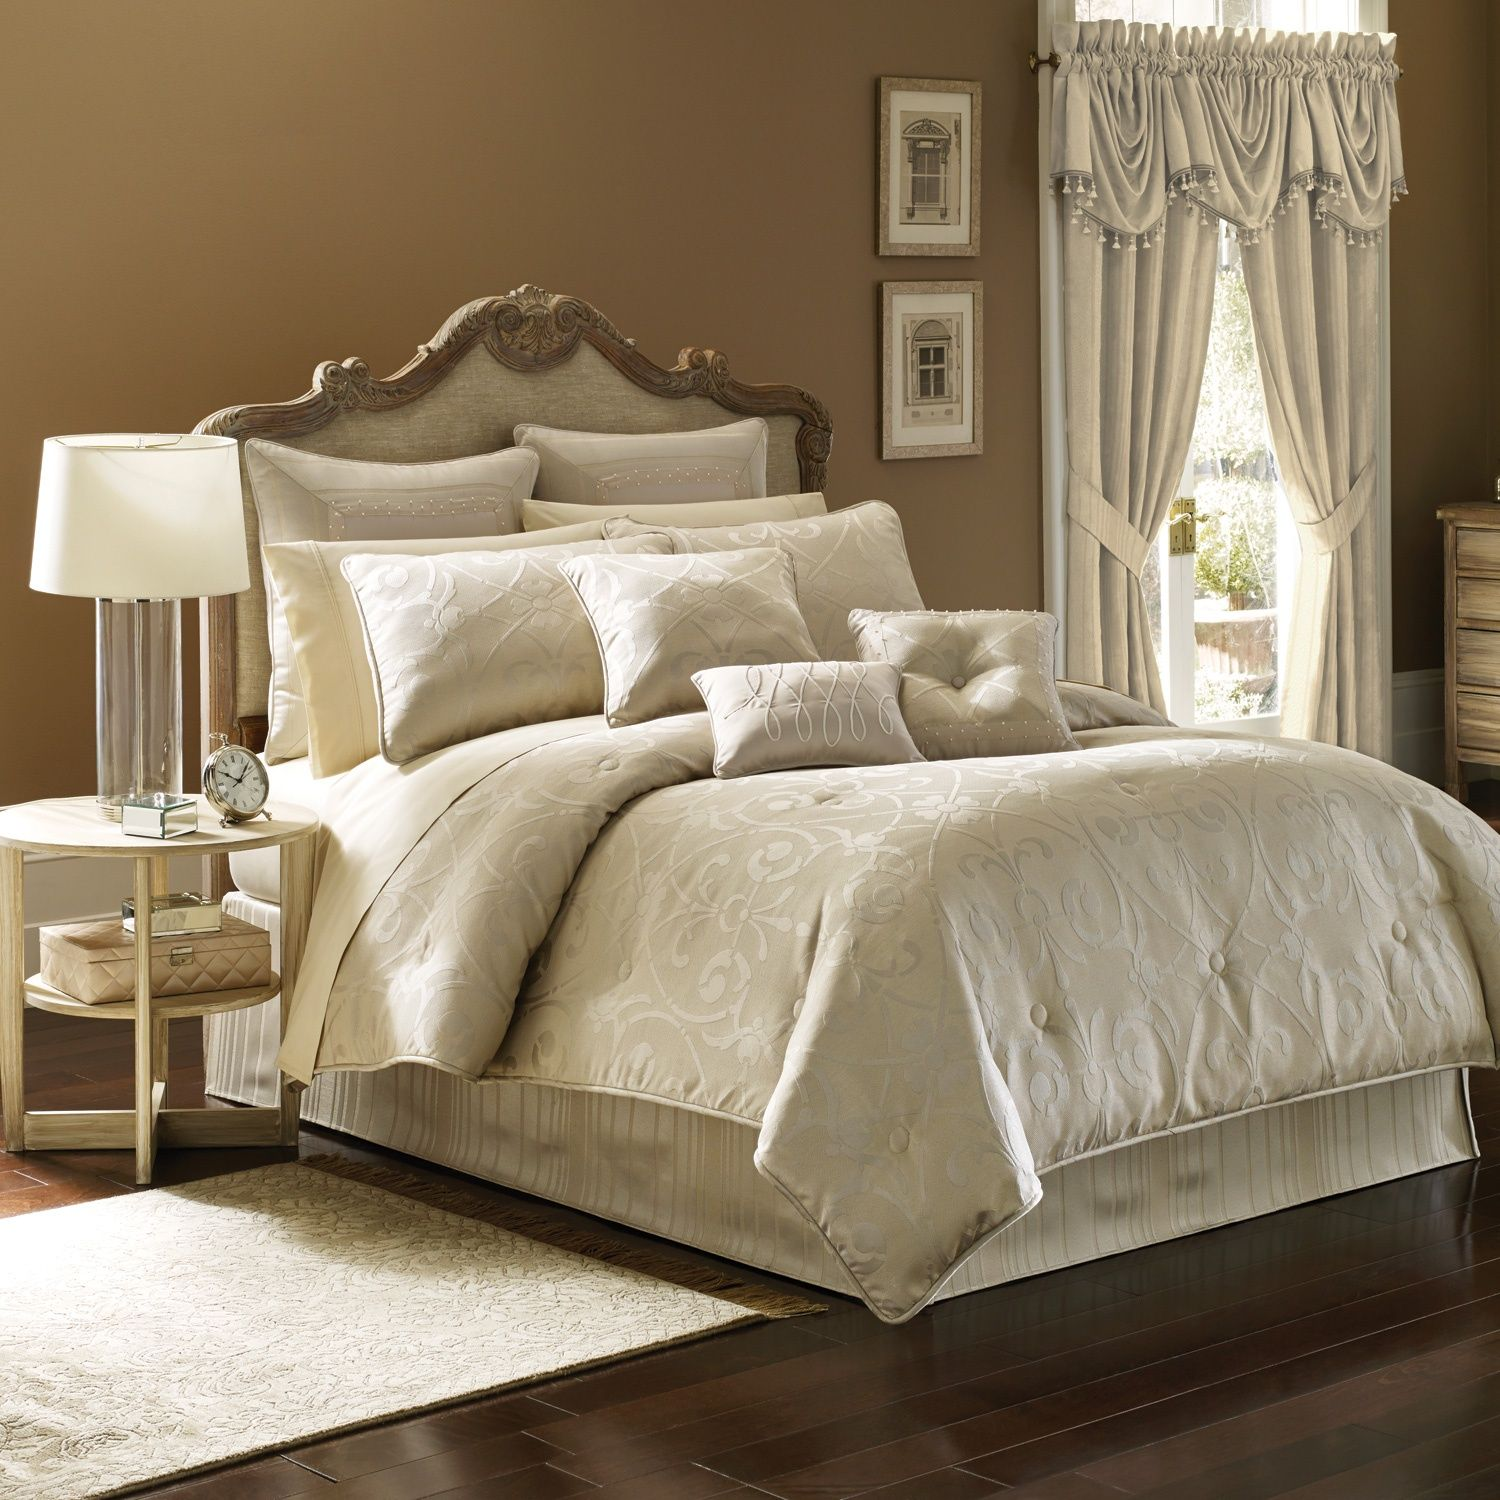 proportions x queen throughout comforters black bed sets size ideas comforter bedroom king